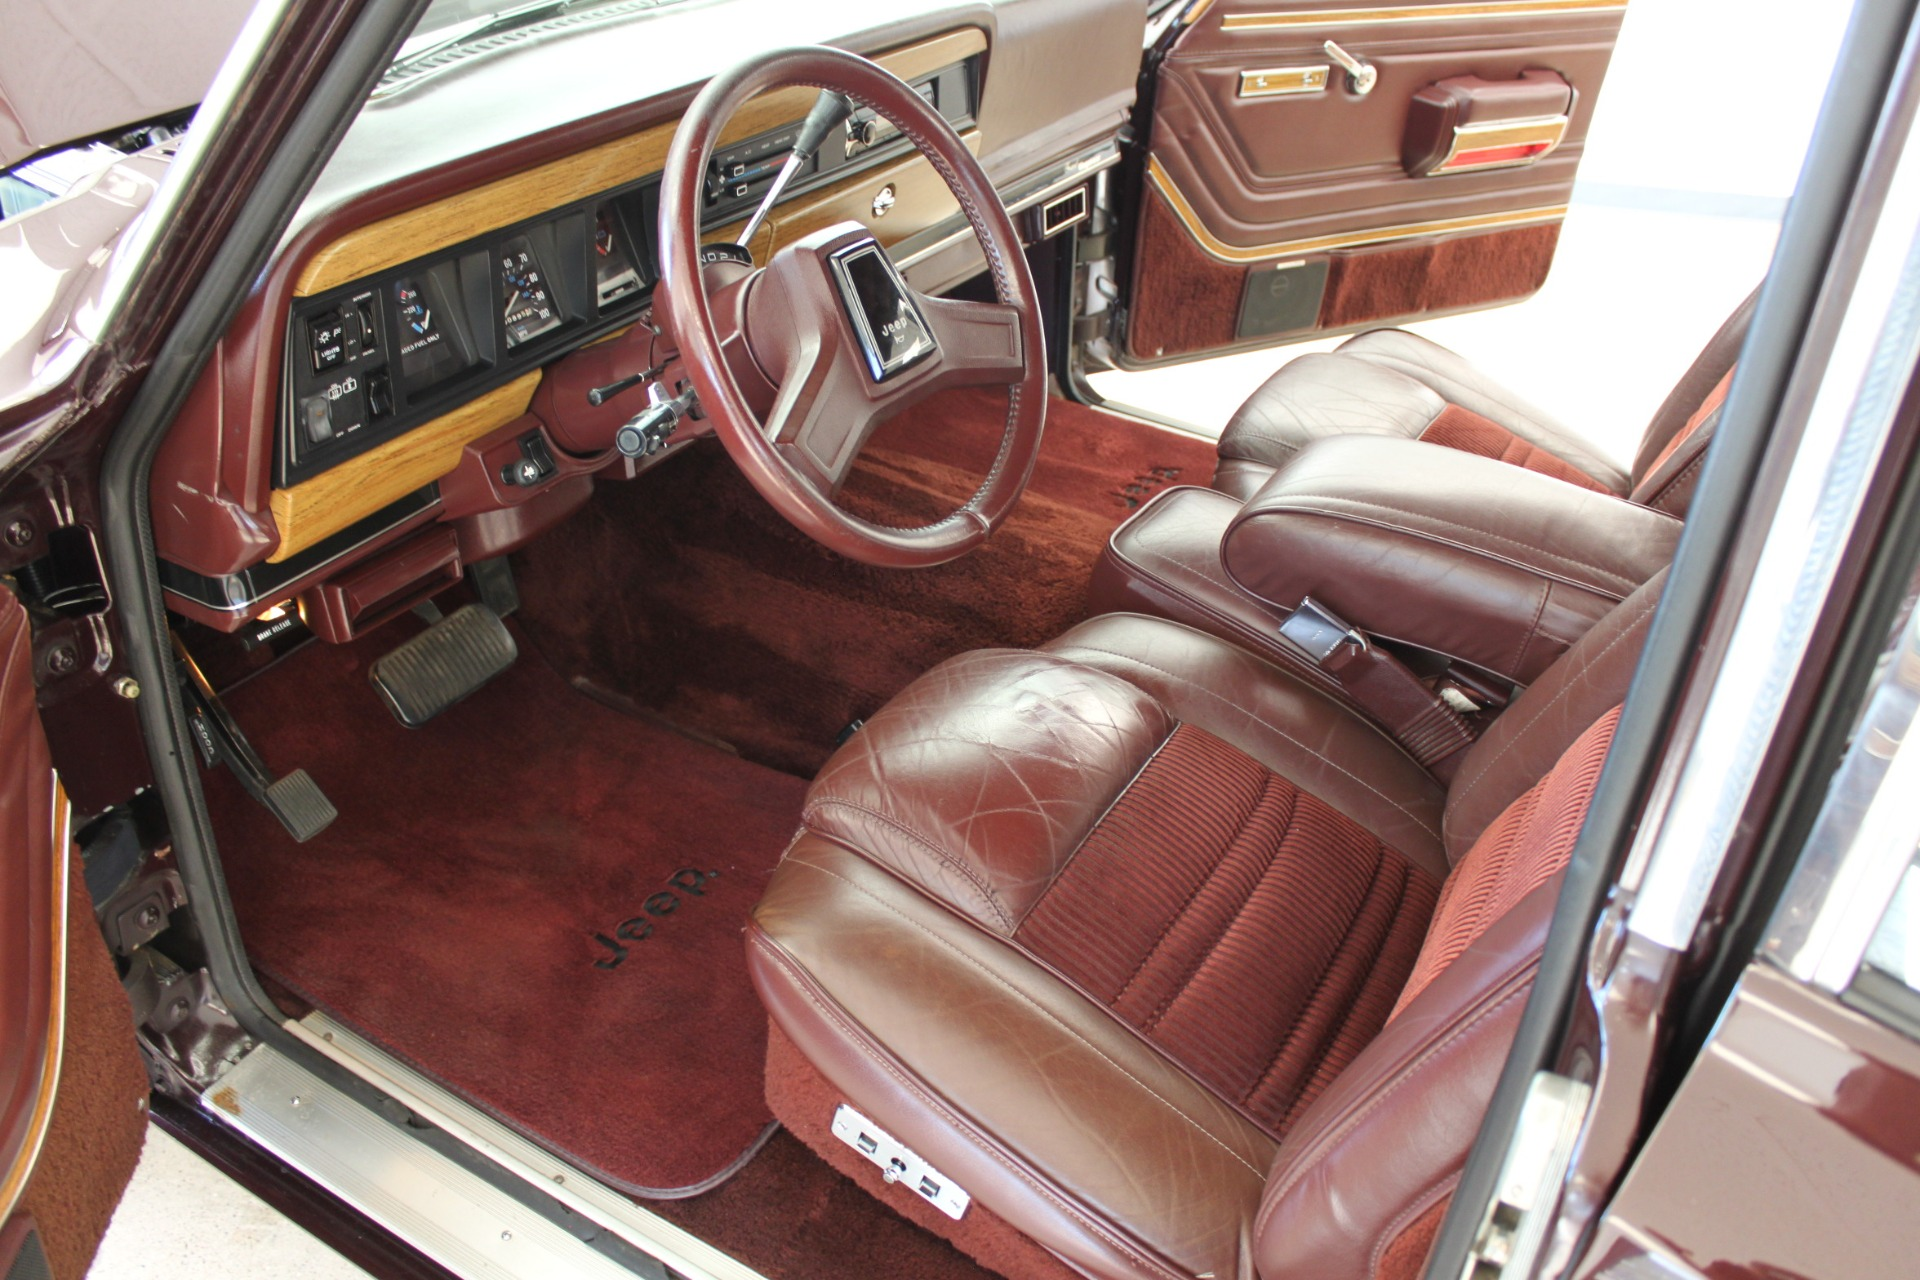 Used-1989-Jeep-Grand-Wagoneer-Limited-4X4-Chevrolet-Dealer-Vernon-Hills